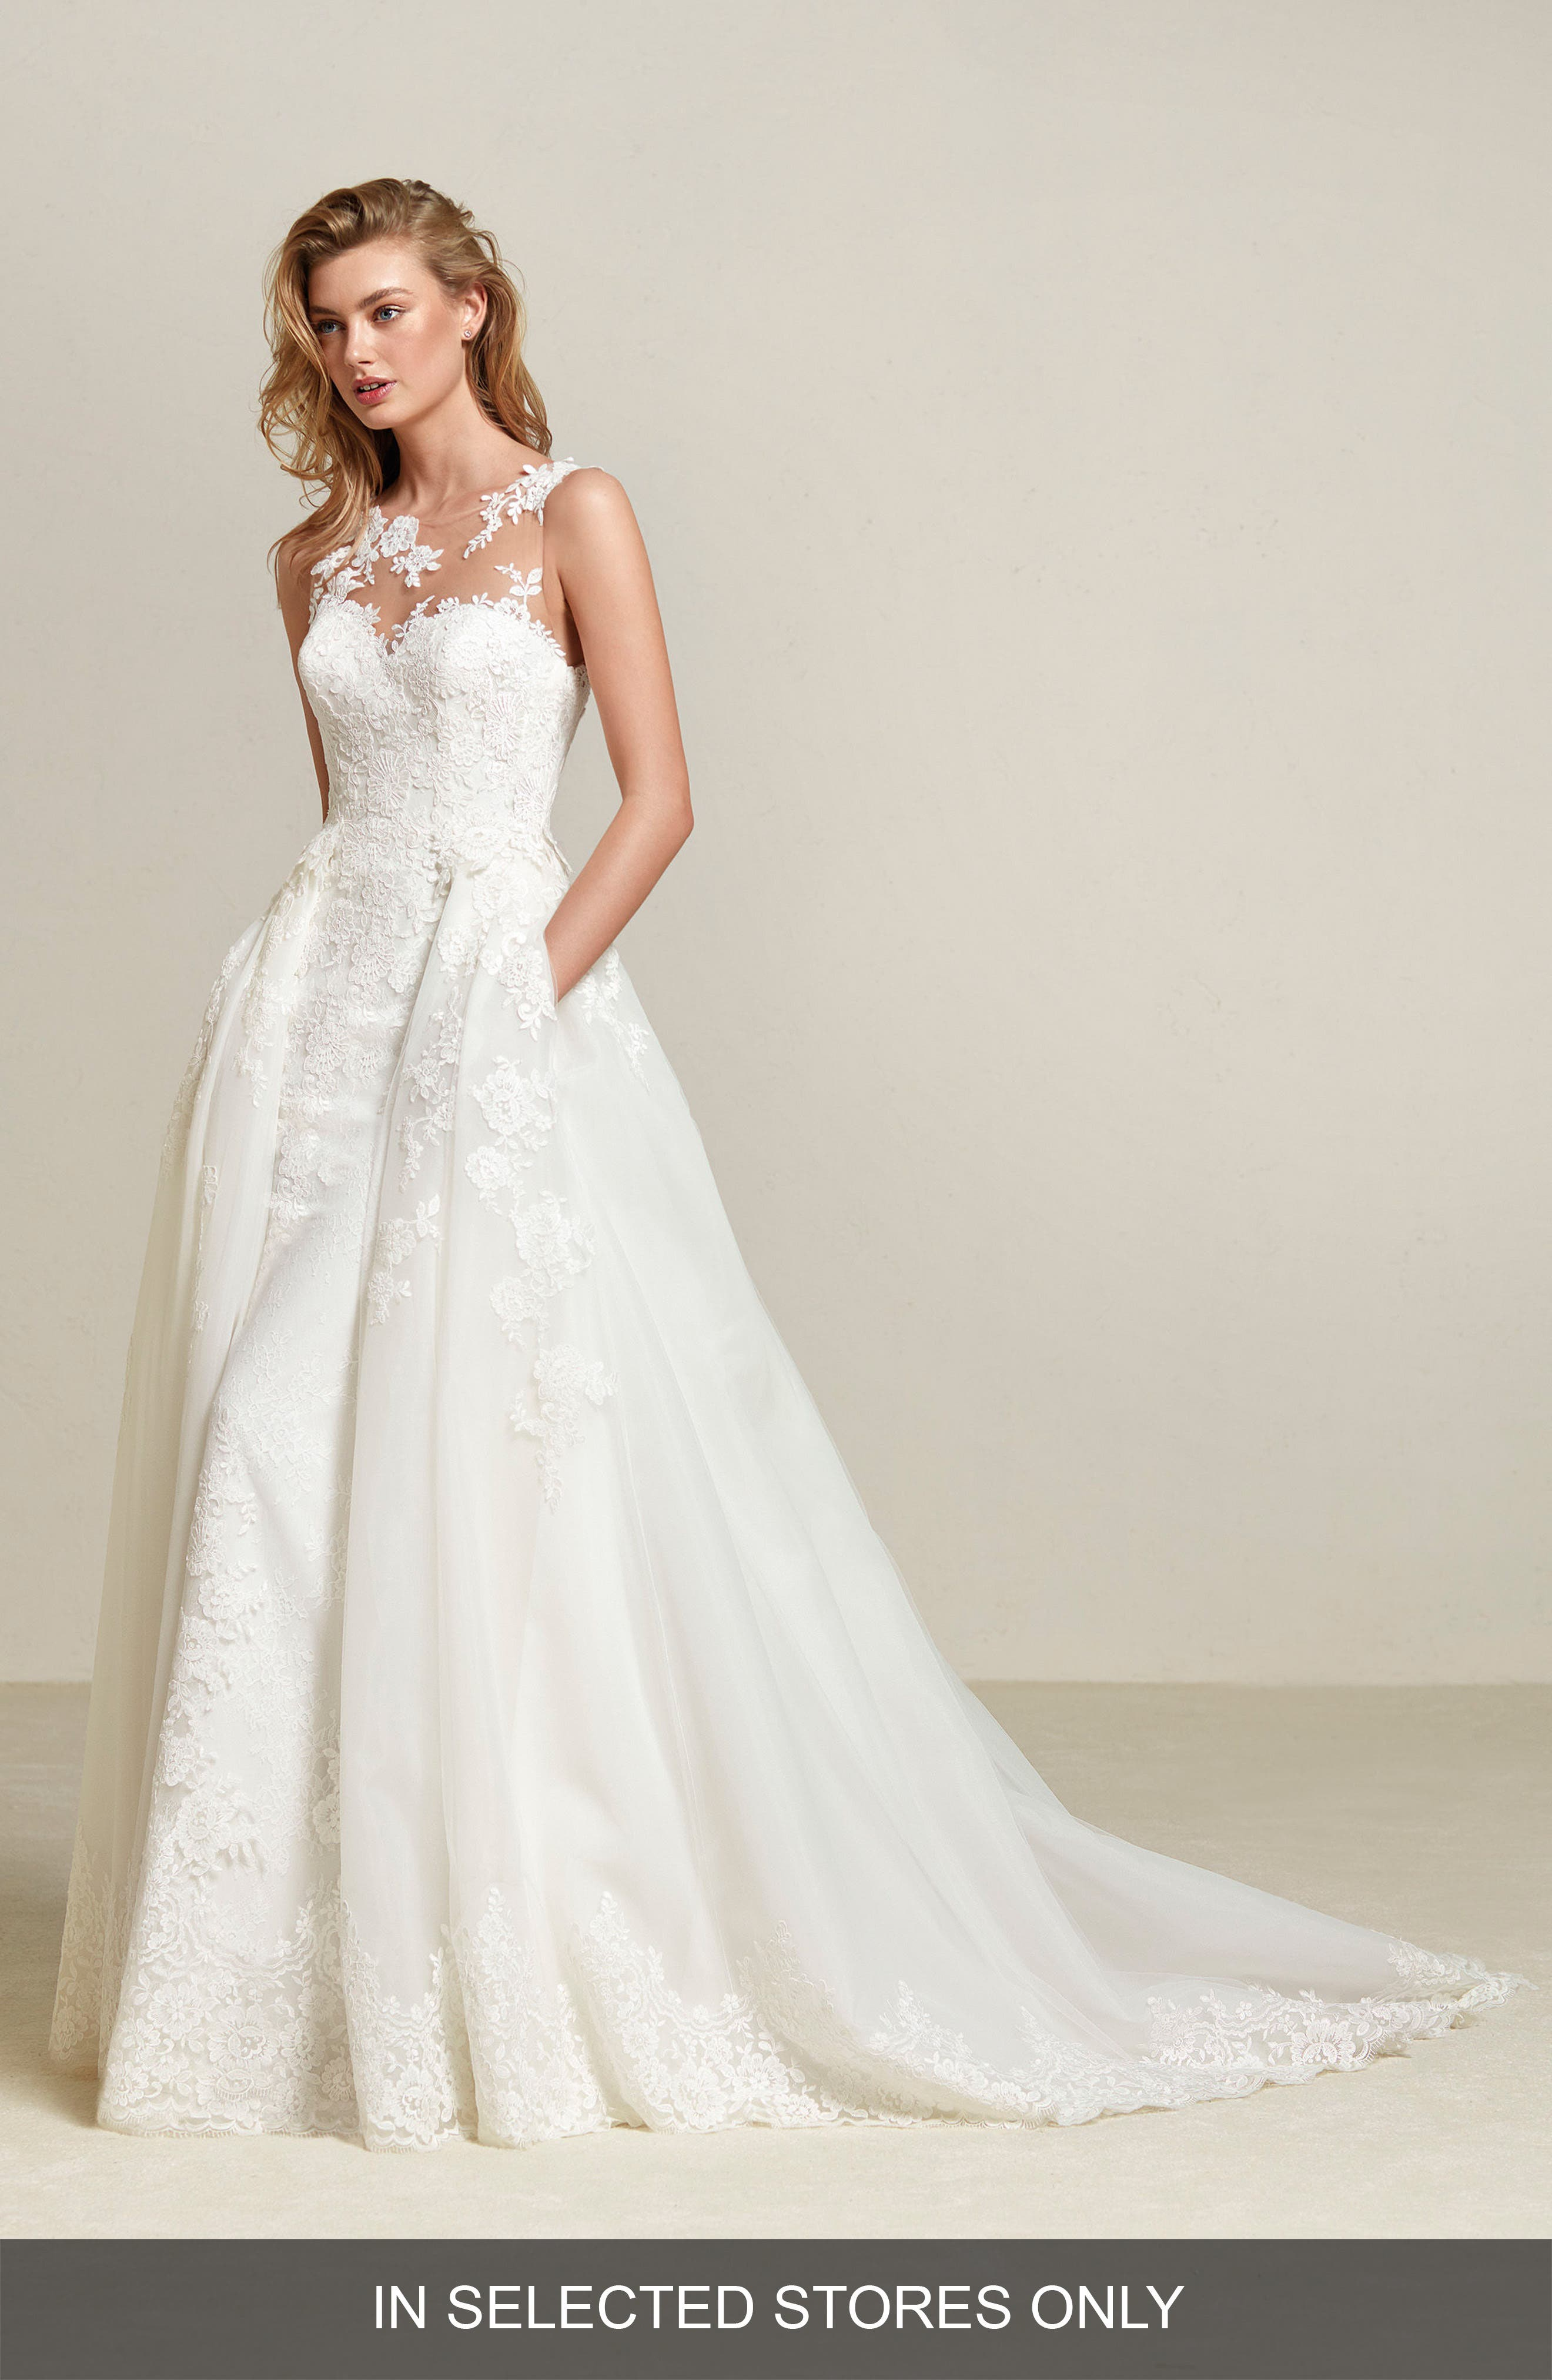 Drum Lace Sheath with Detachable Overskirt,                         Main,                         color, OFF WHITE/CRYSTAL